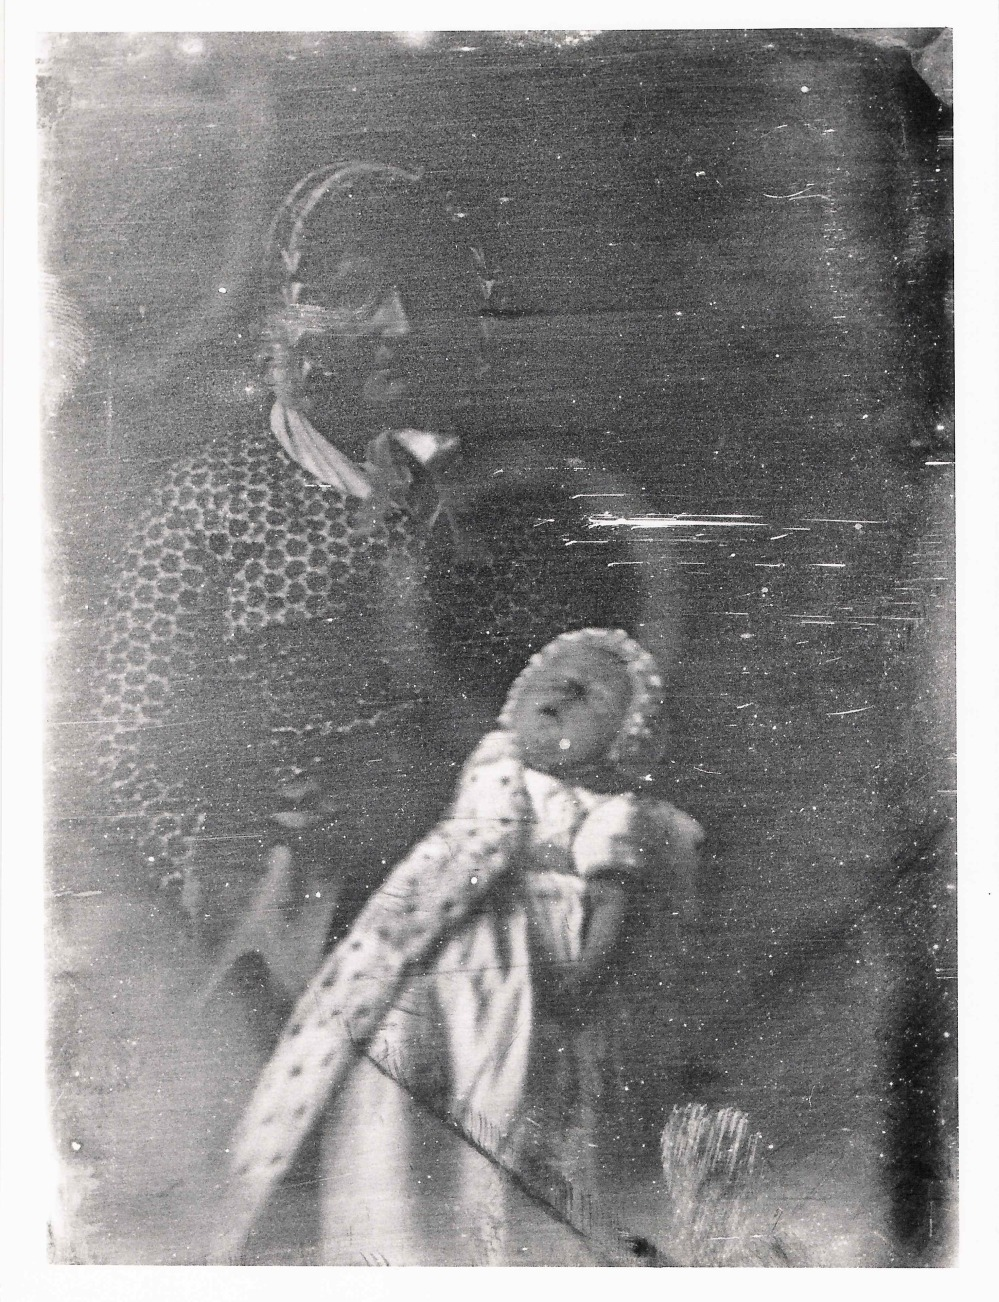 preview image for Photograph (Daguerreotype) of a Woman Holding a Sleeping Baby, its Face and Arm Visible, by Hugh Lee Pattinson, c.1845